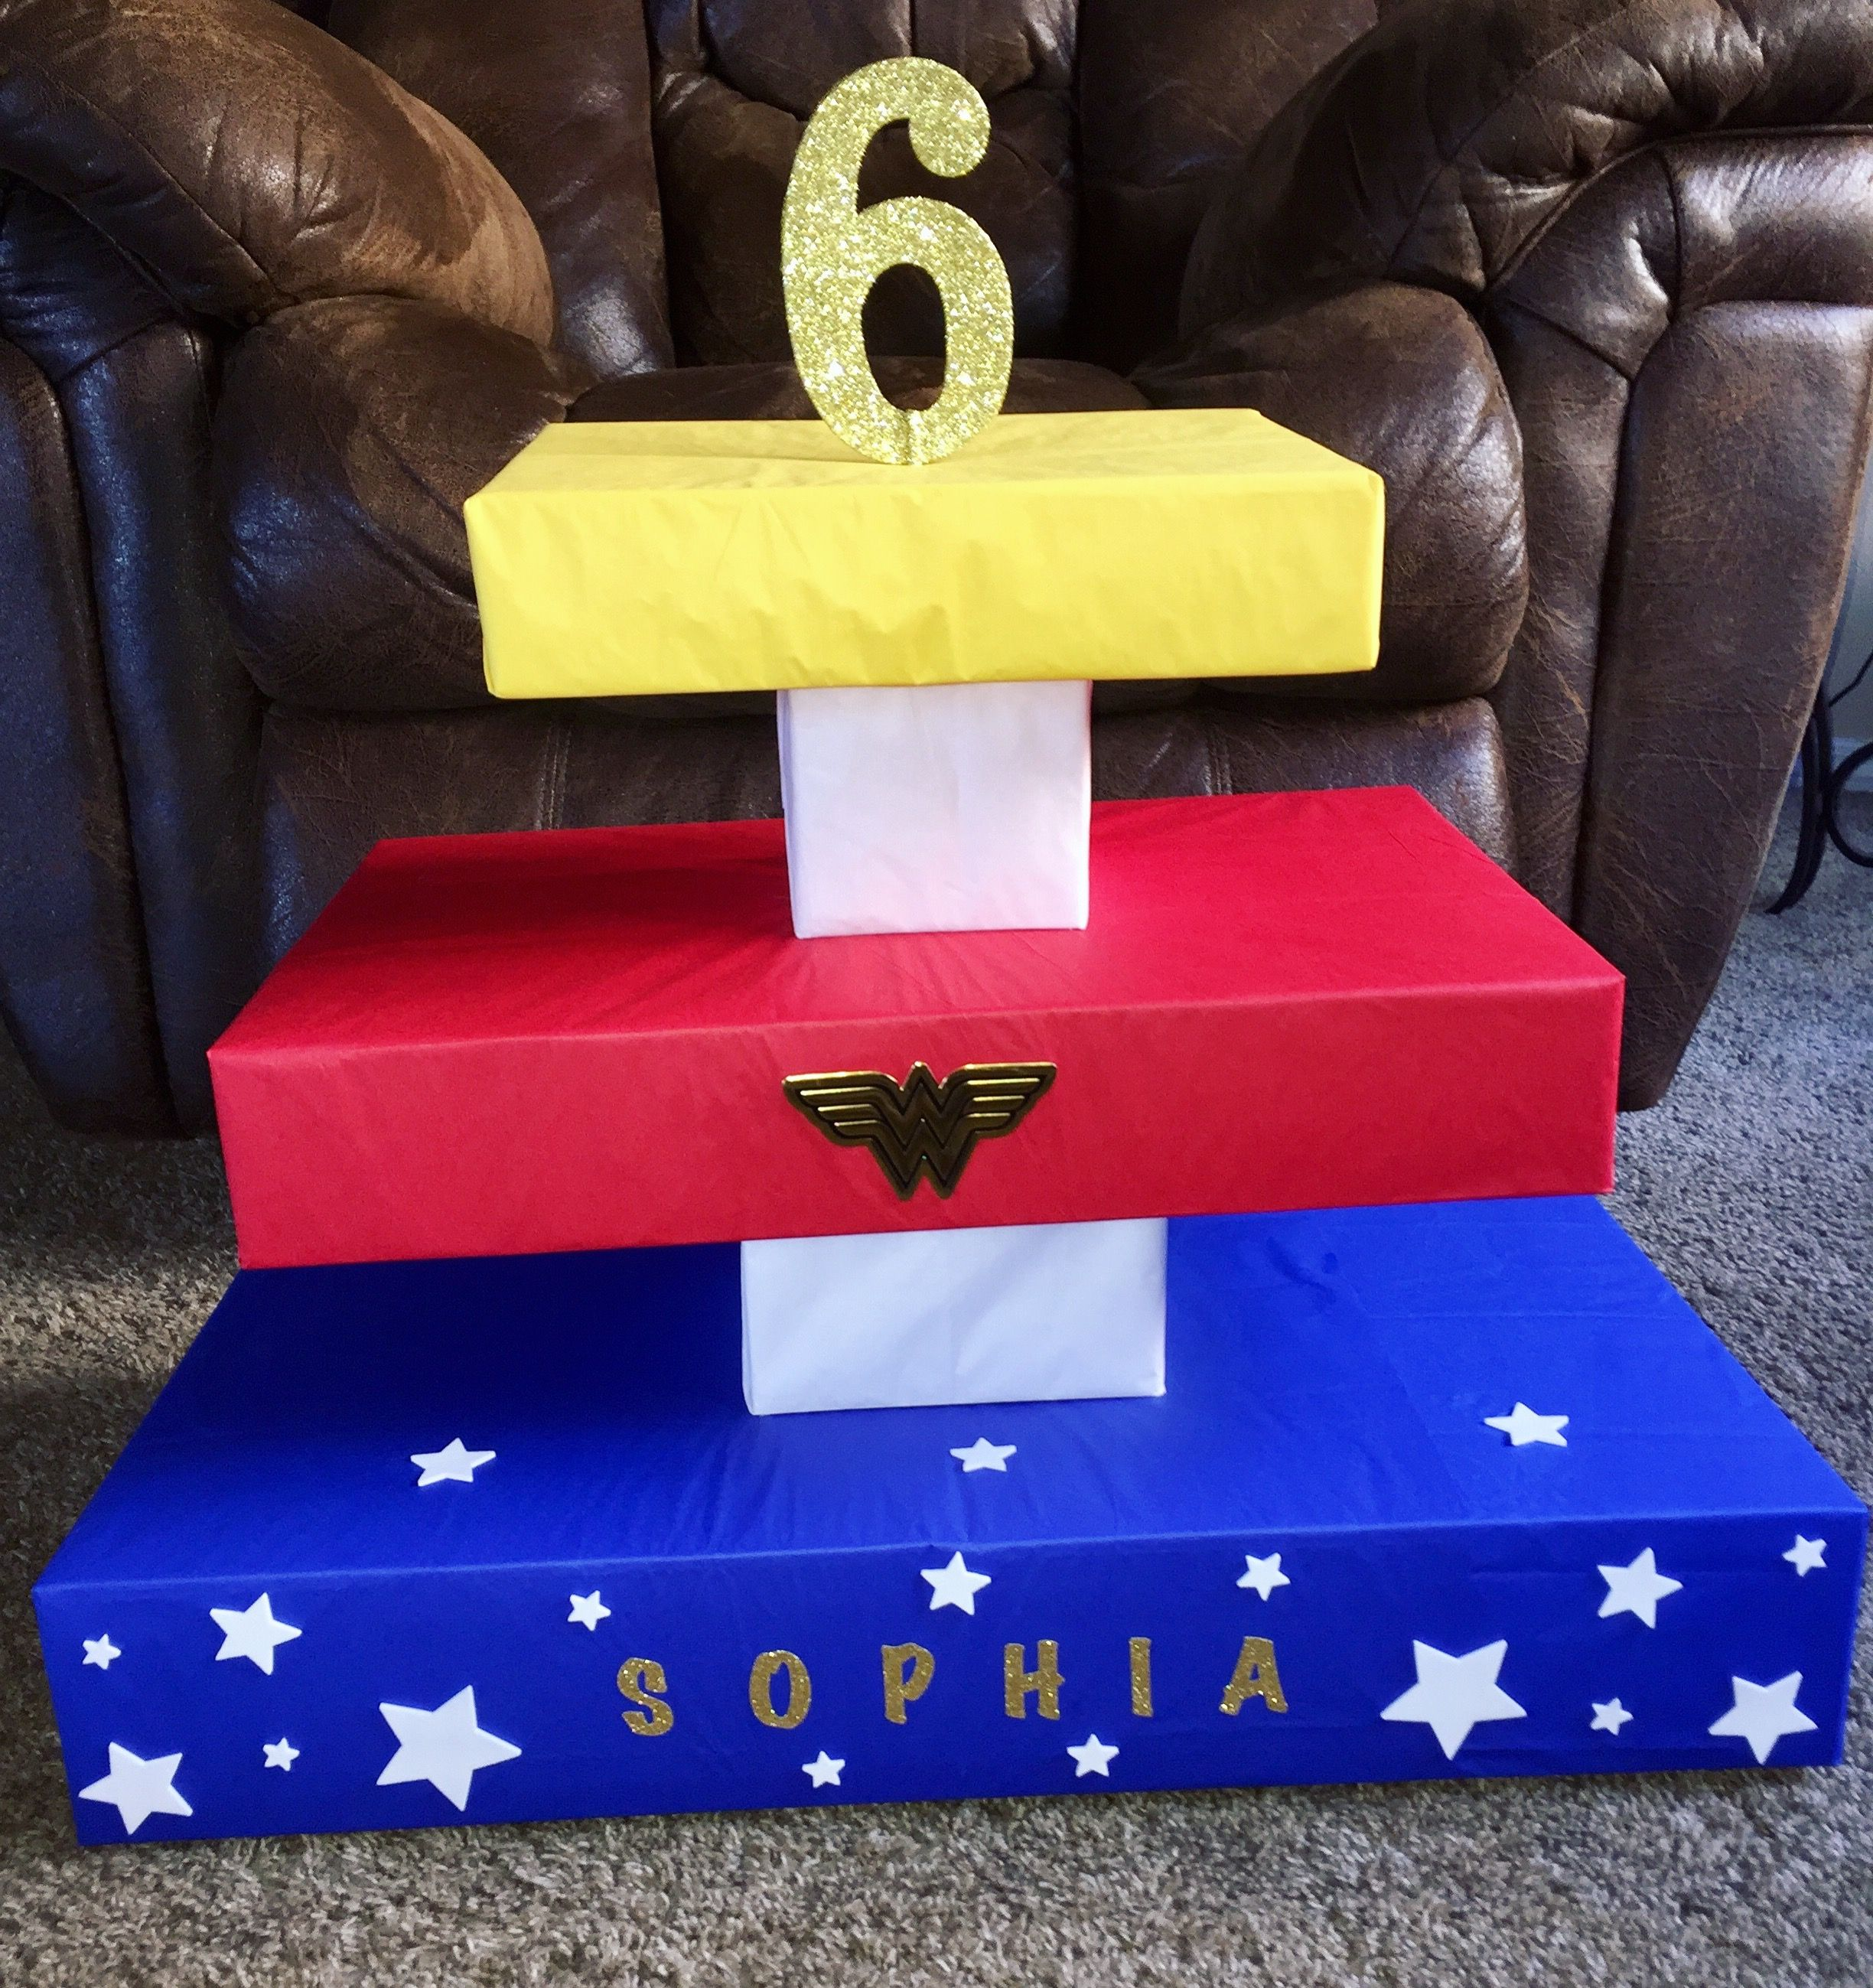 Wonder Woman Cupcake Tower Made From 3 Different Sized